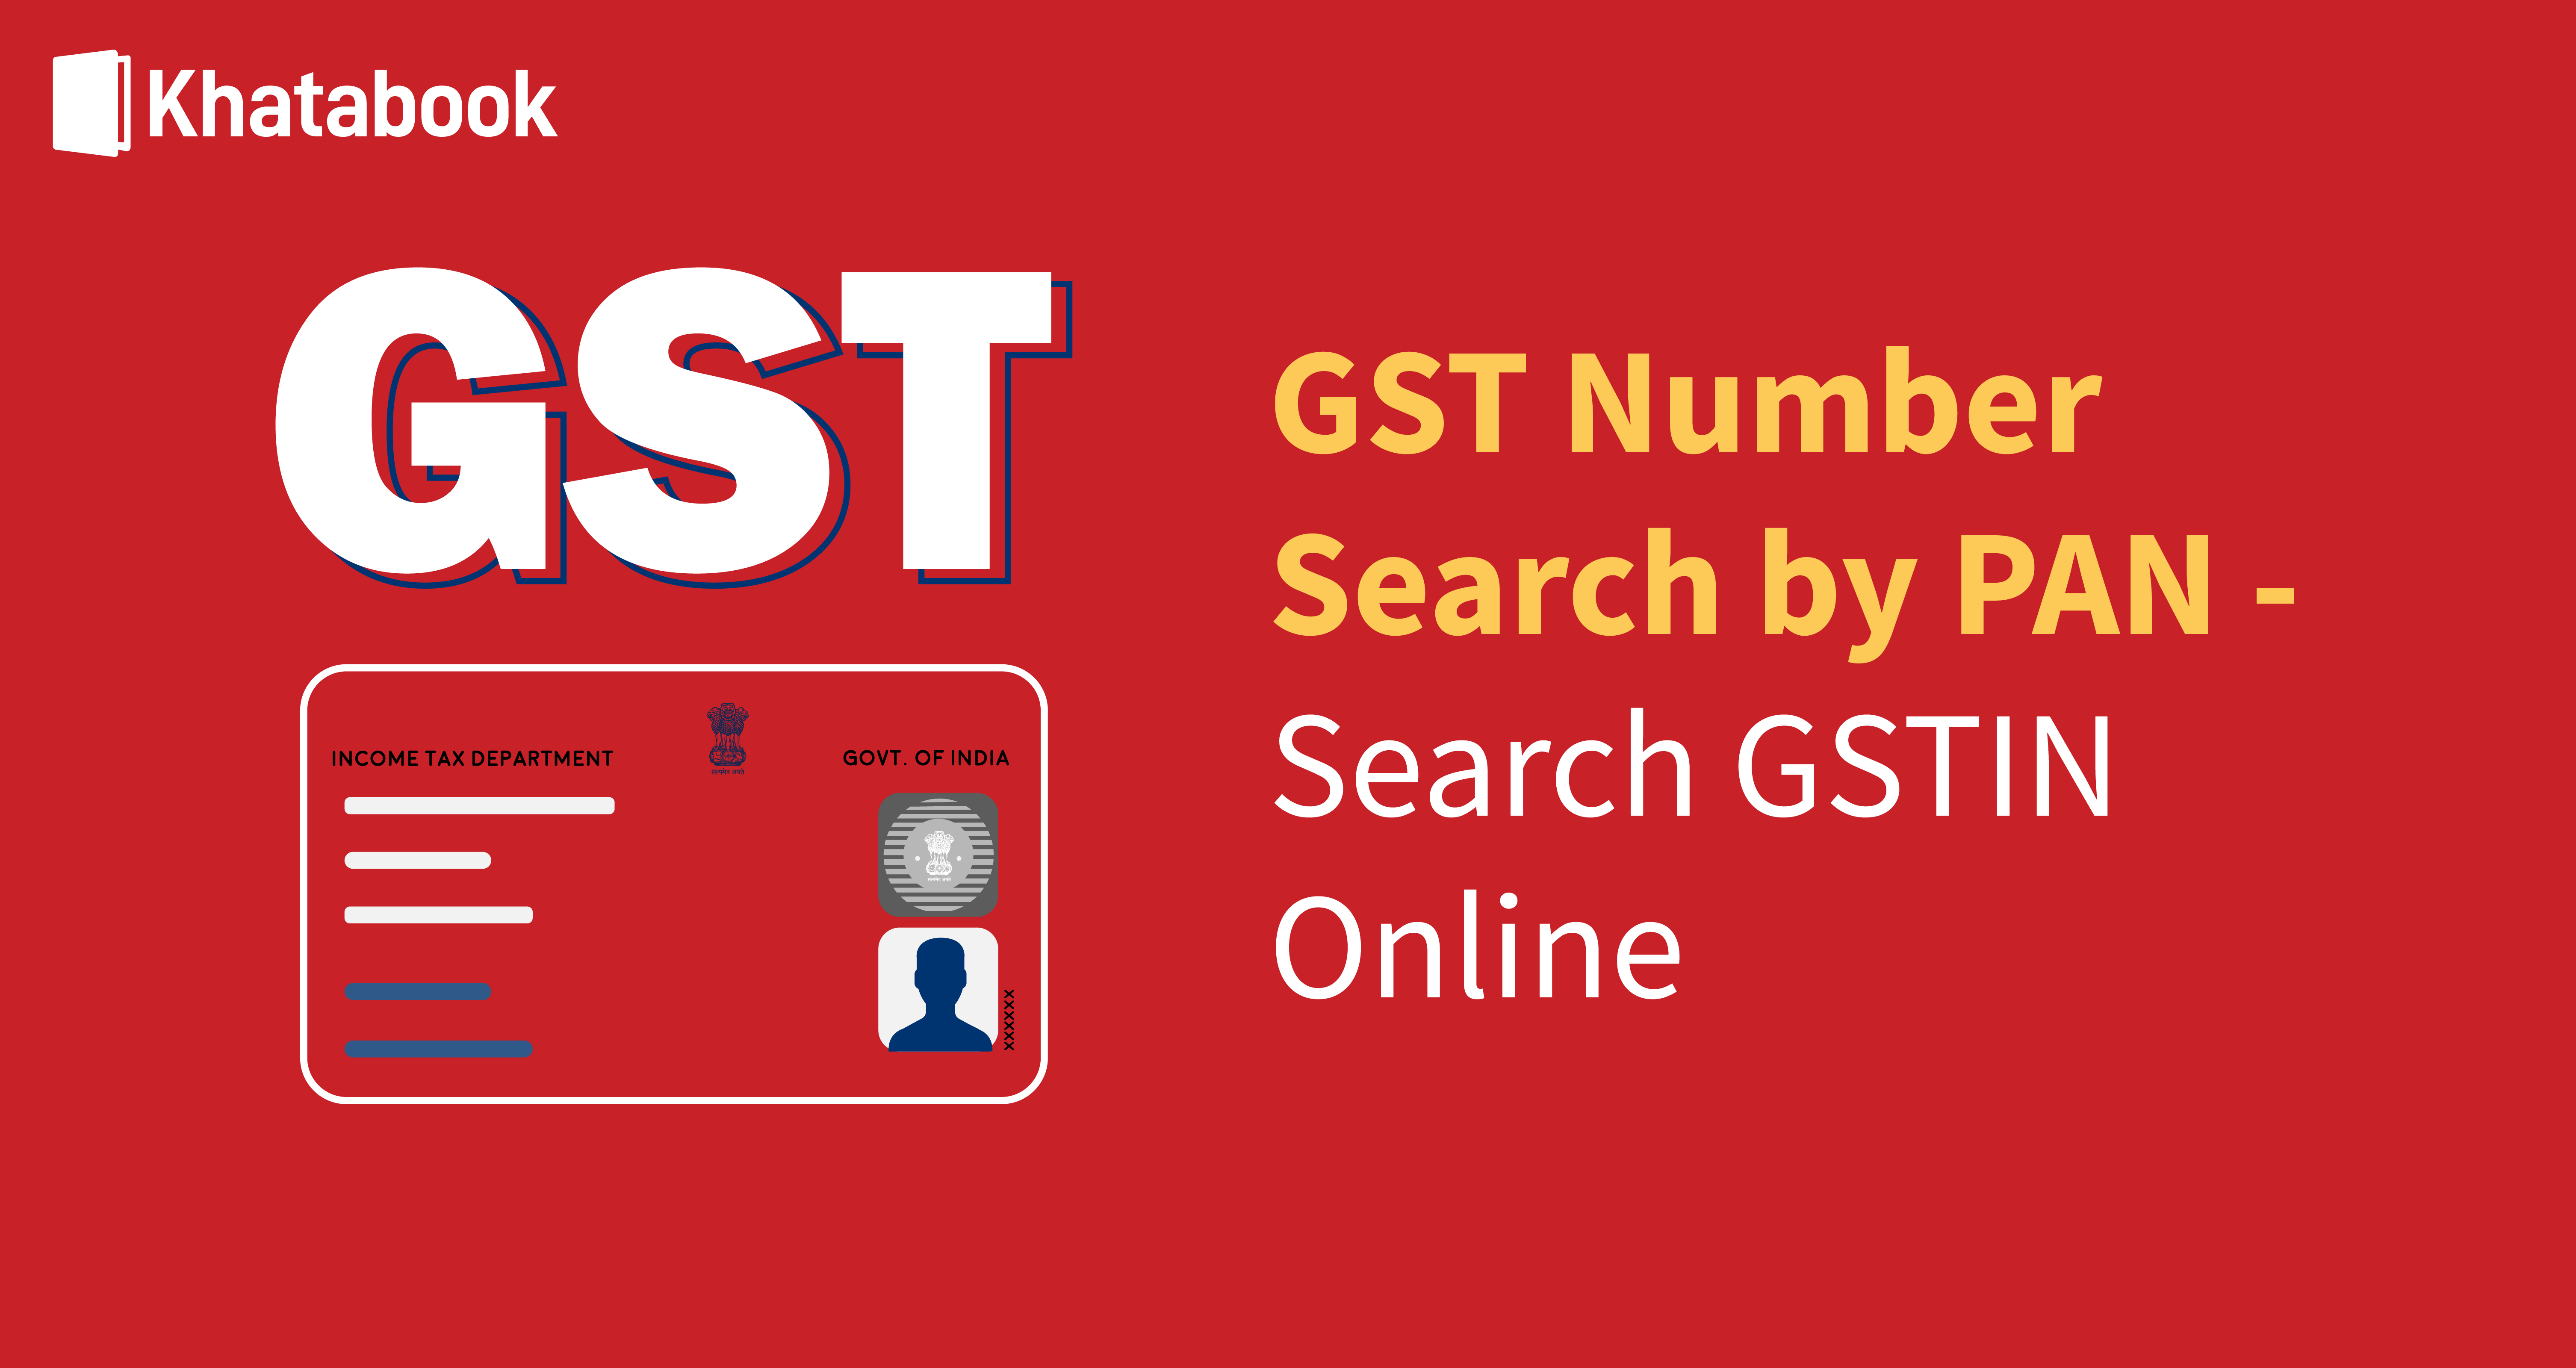 How to do GST Number Search by PAN?